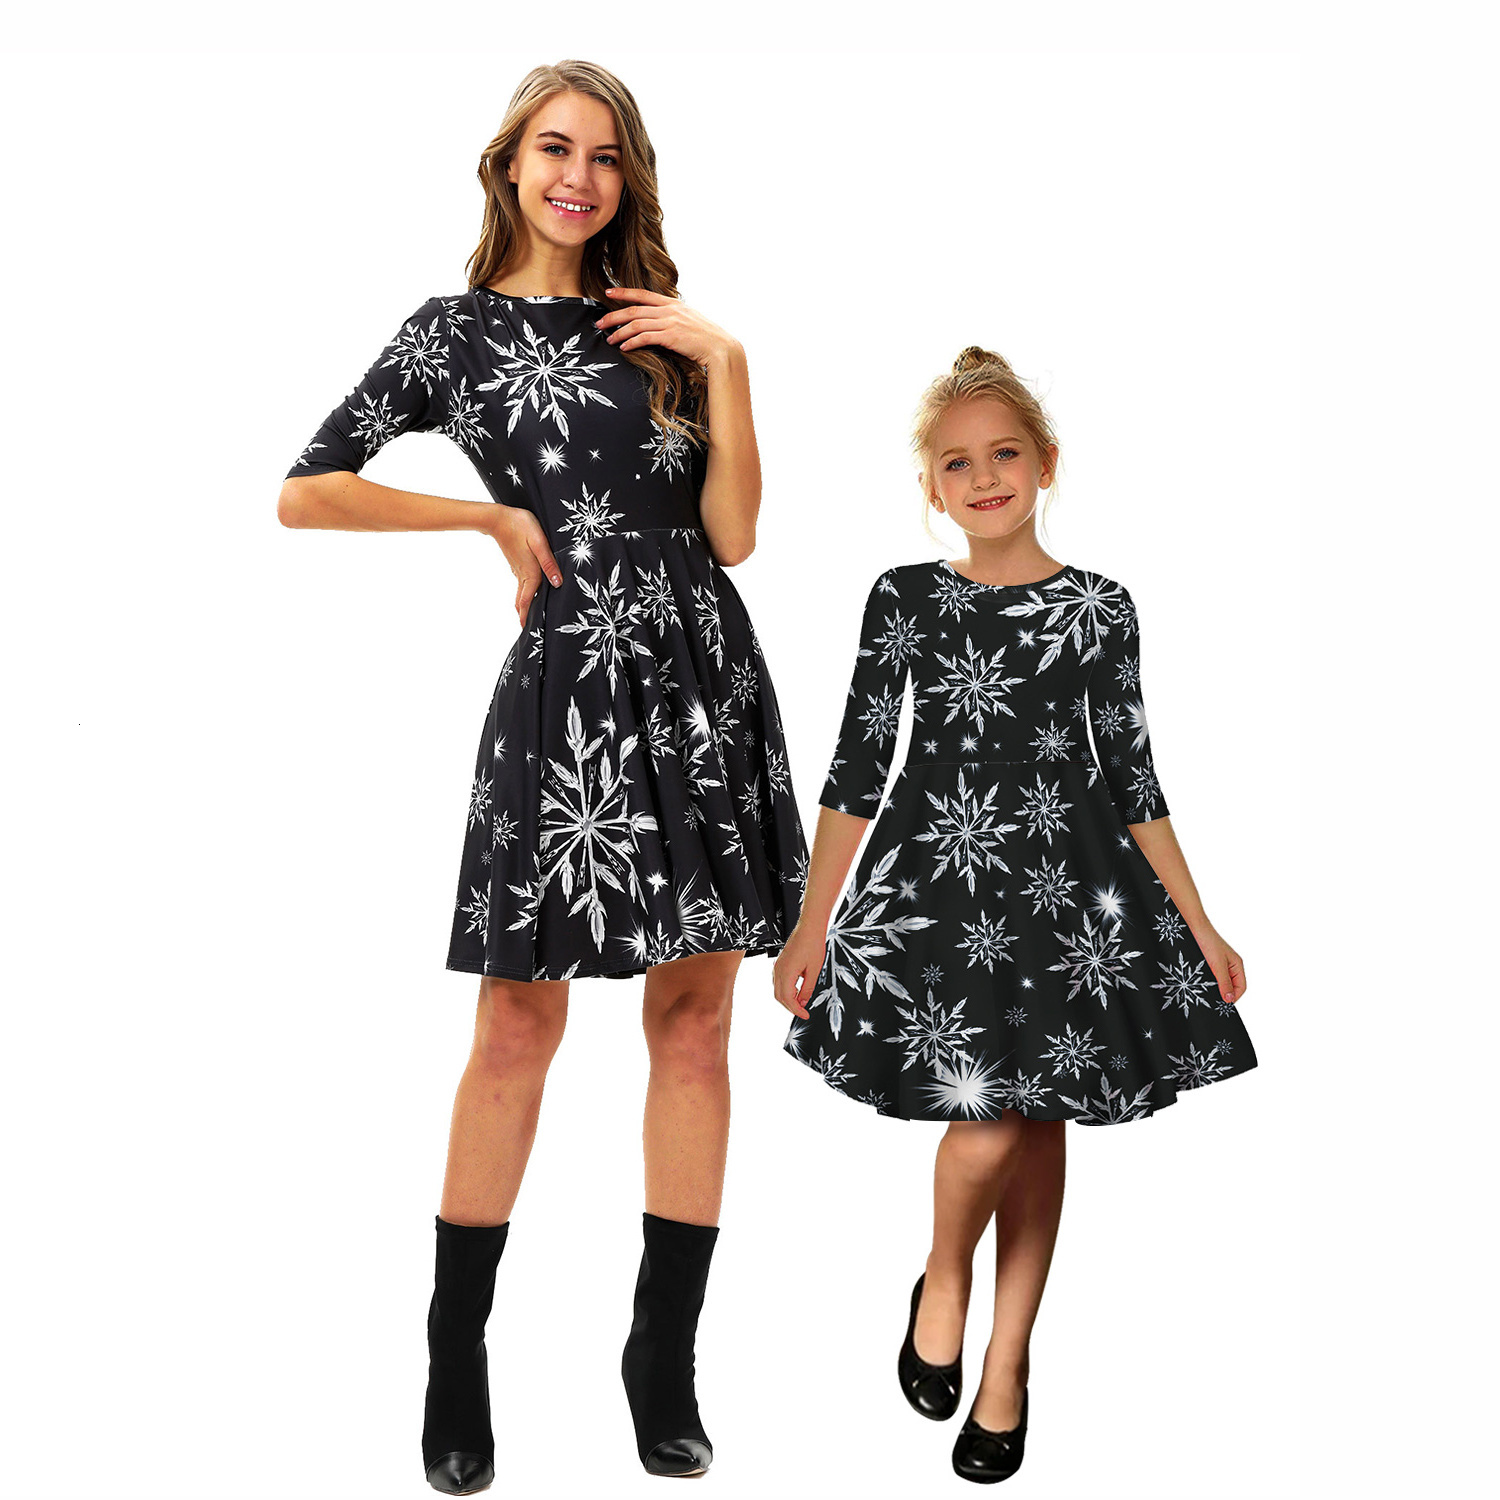 Snowflake Christmas Mother Daughter Dresses Mommy And Me Clothes Family Matching Outfits Look Women Girls Mom Mum And Baby Dress